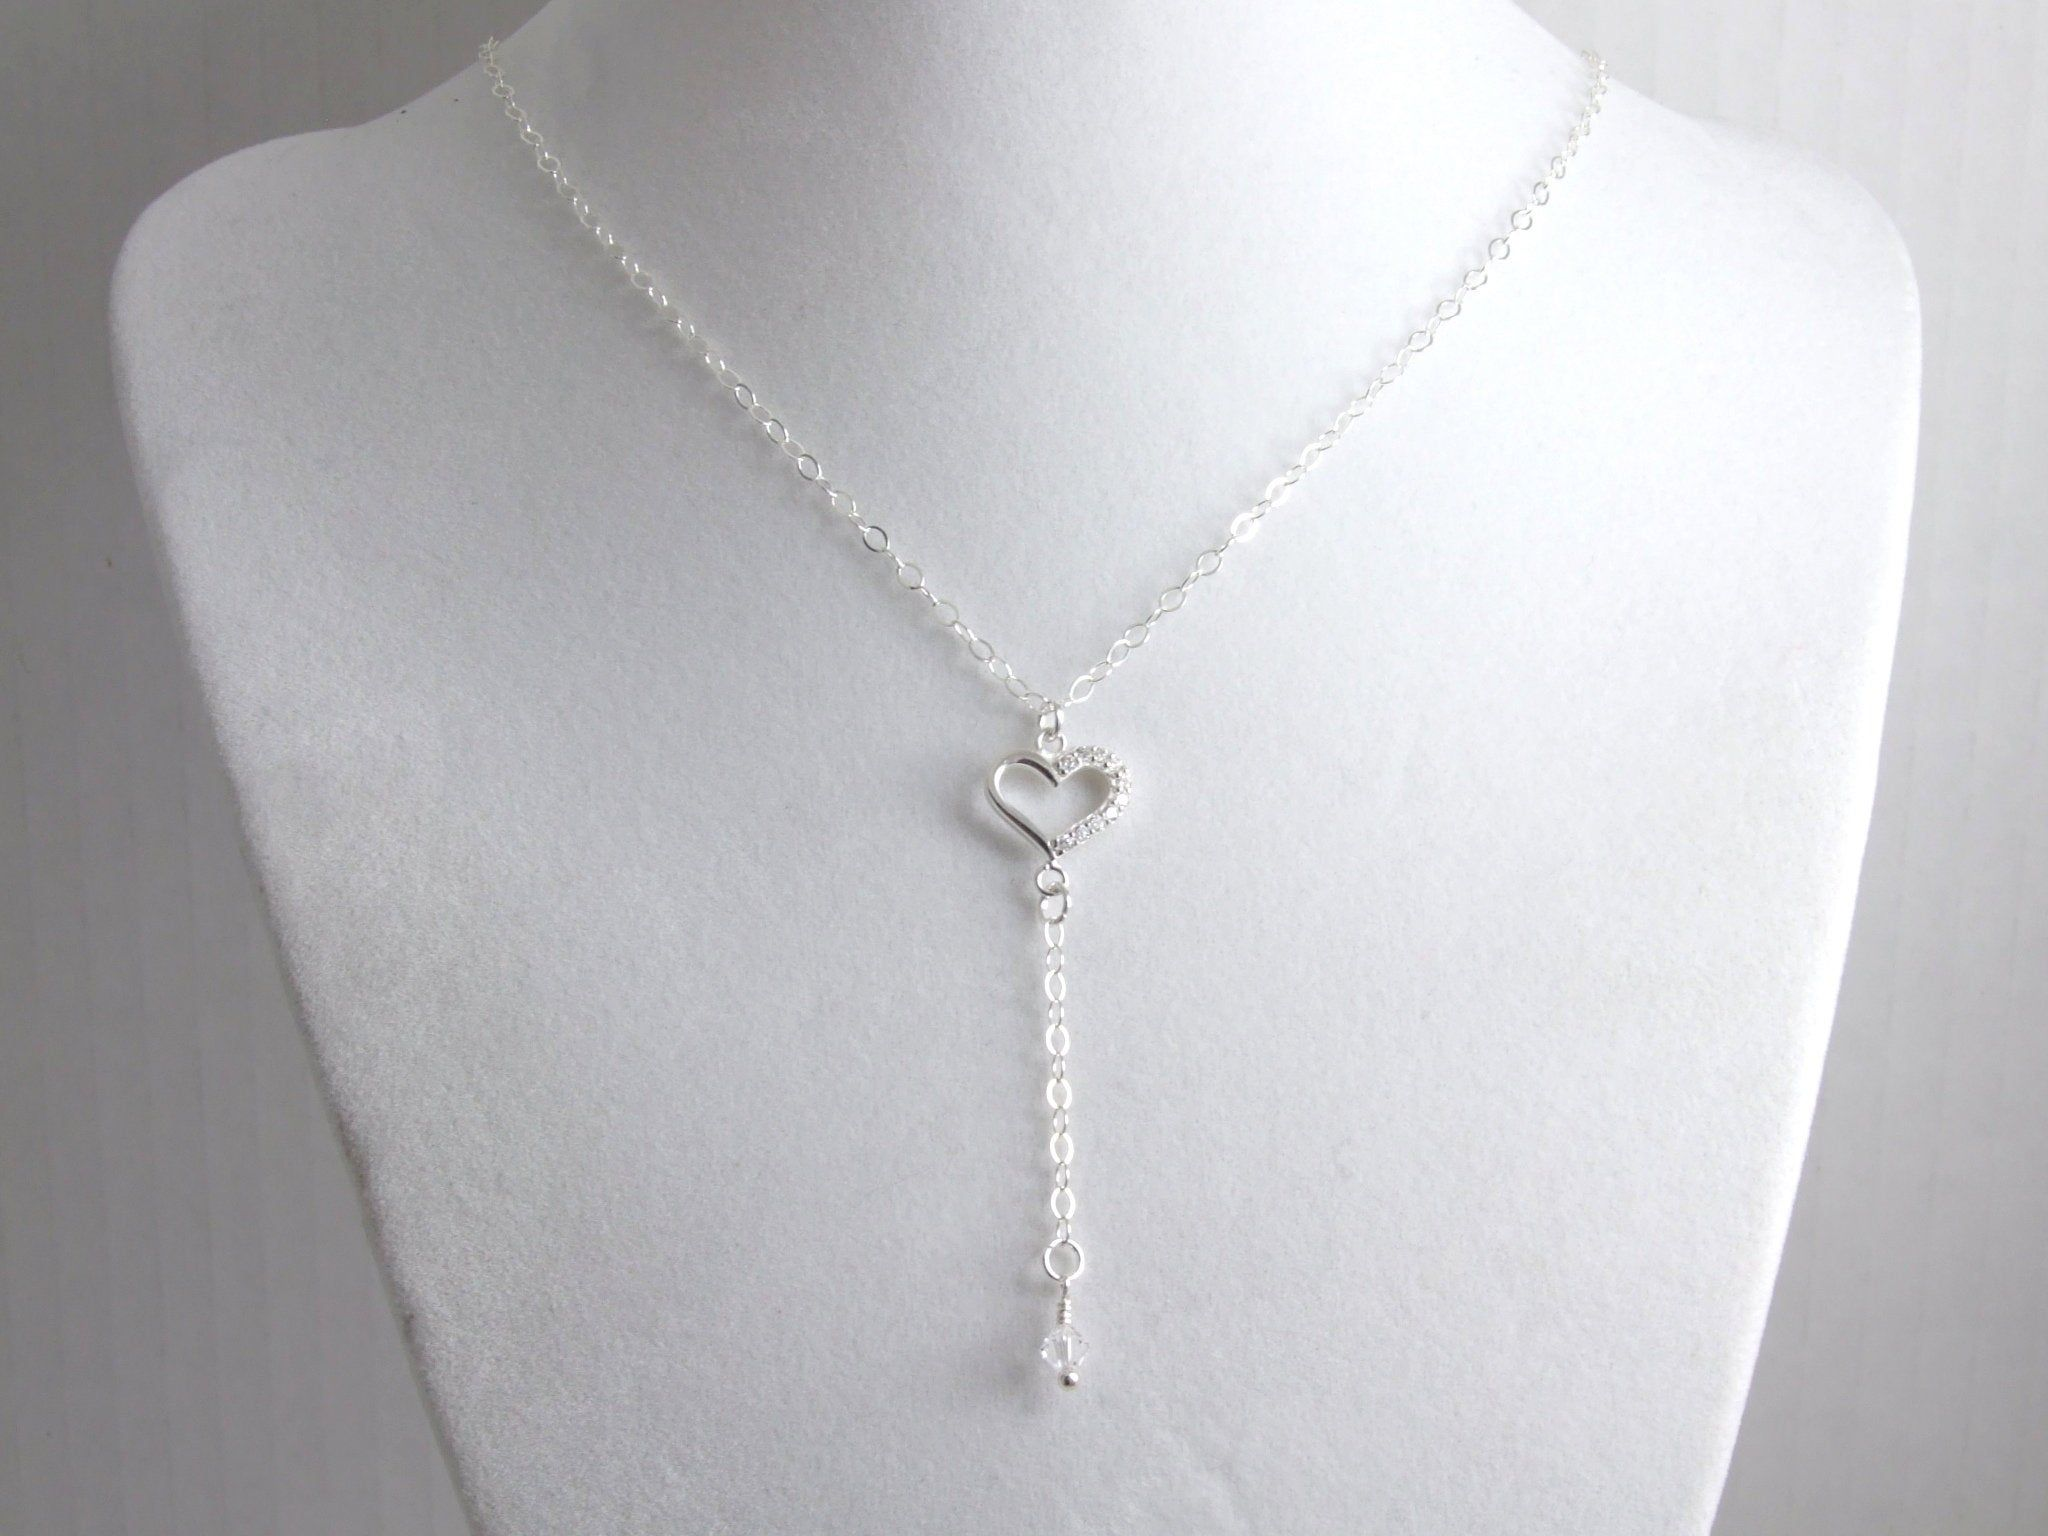 15mm x 22mm Jewel Tie 925 Sterling Silver Heart White//Blue//Black Crystal /& Resin Love Knot Pendant